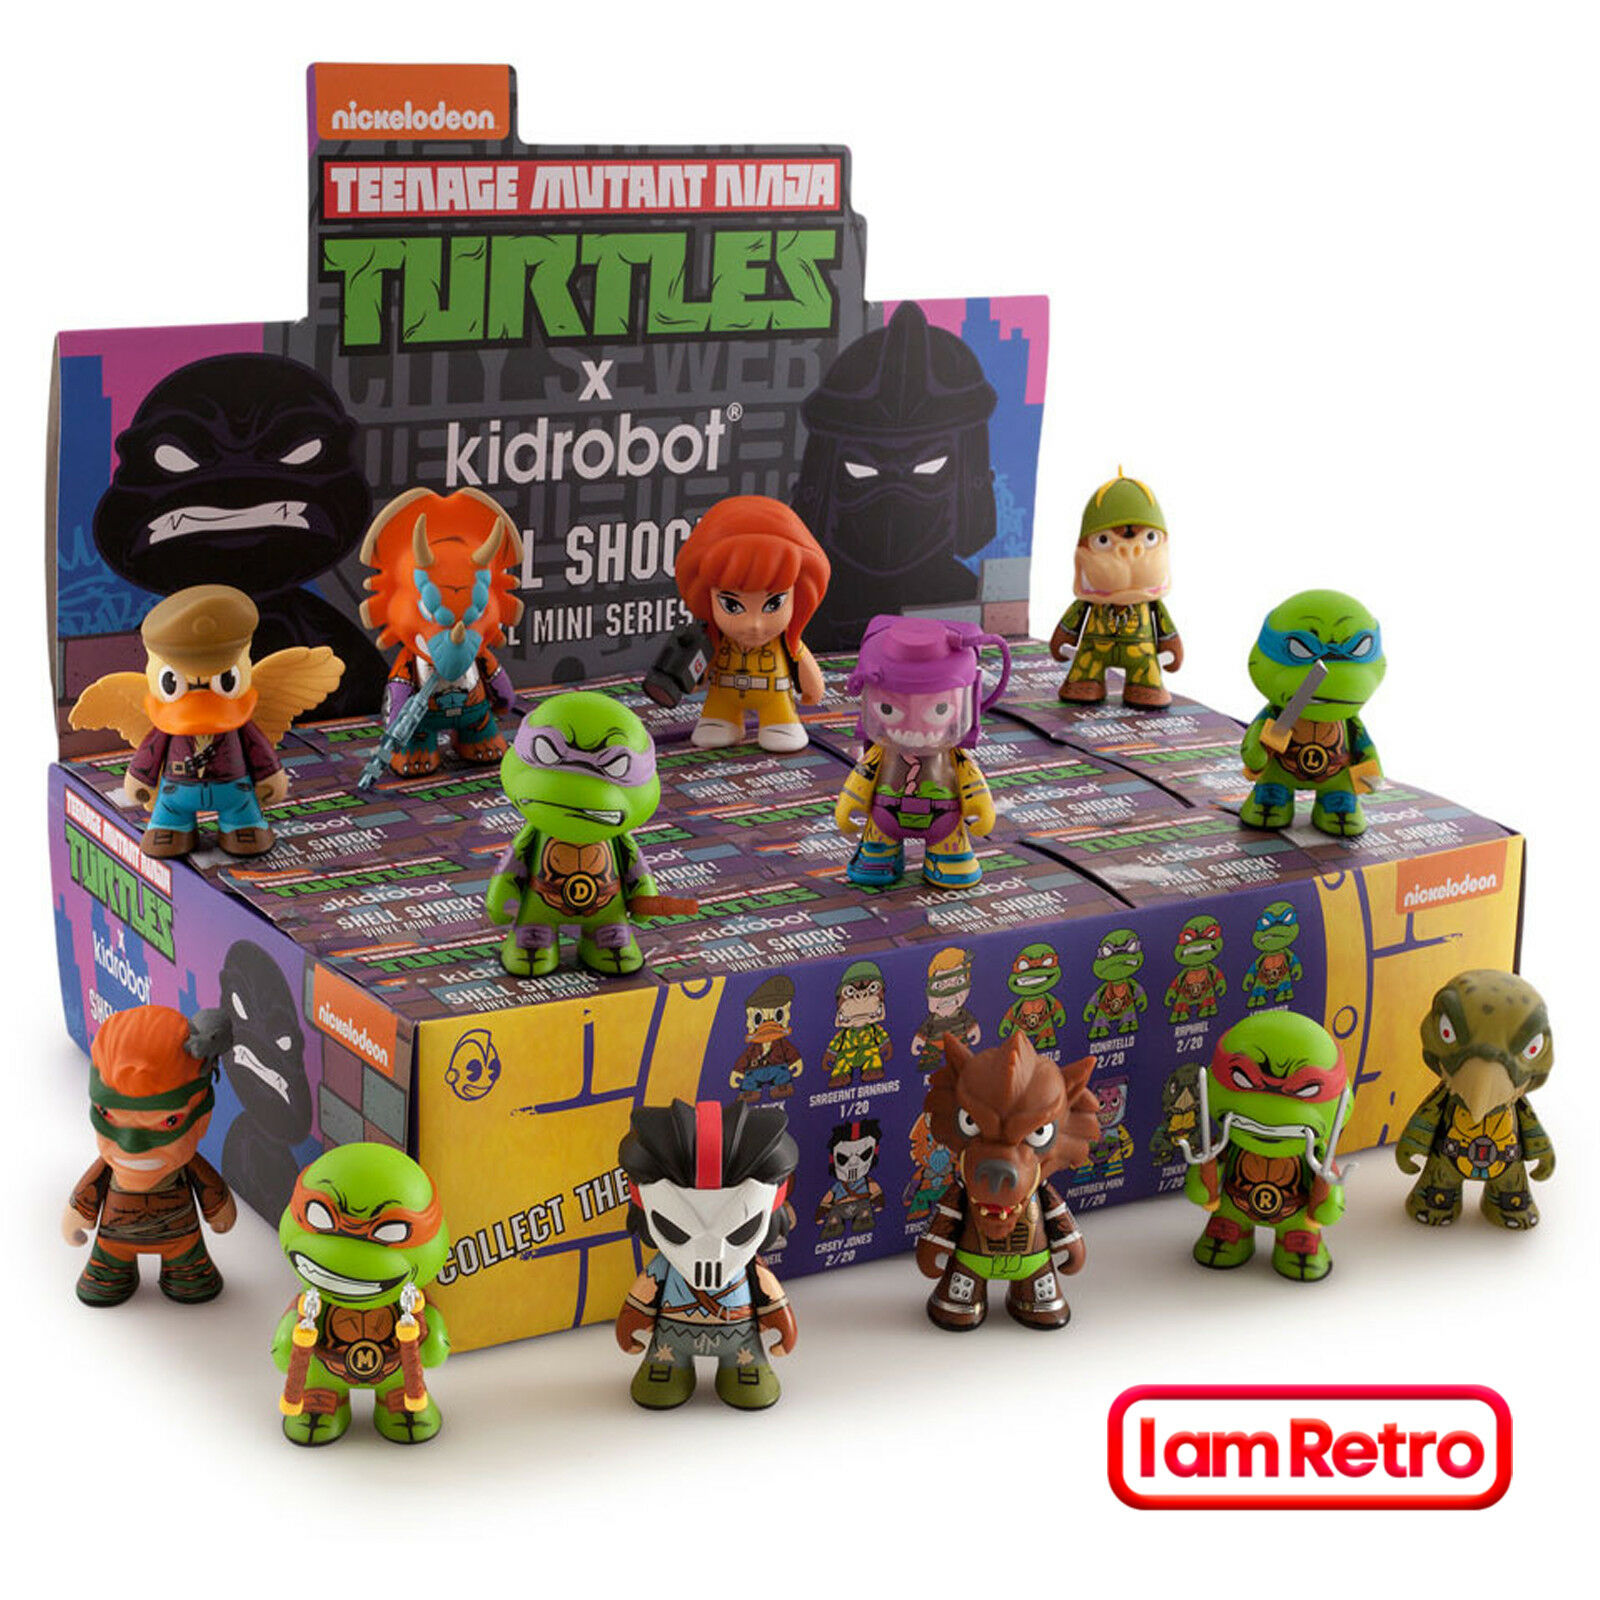 Tmnt Teenage Mutant Ninja Turtles Shell Shock serie 2 Mini Caja Precintada Kidrobot